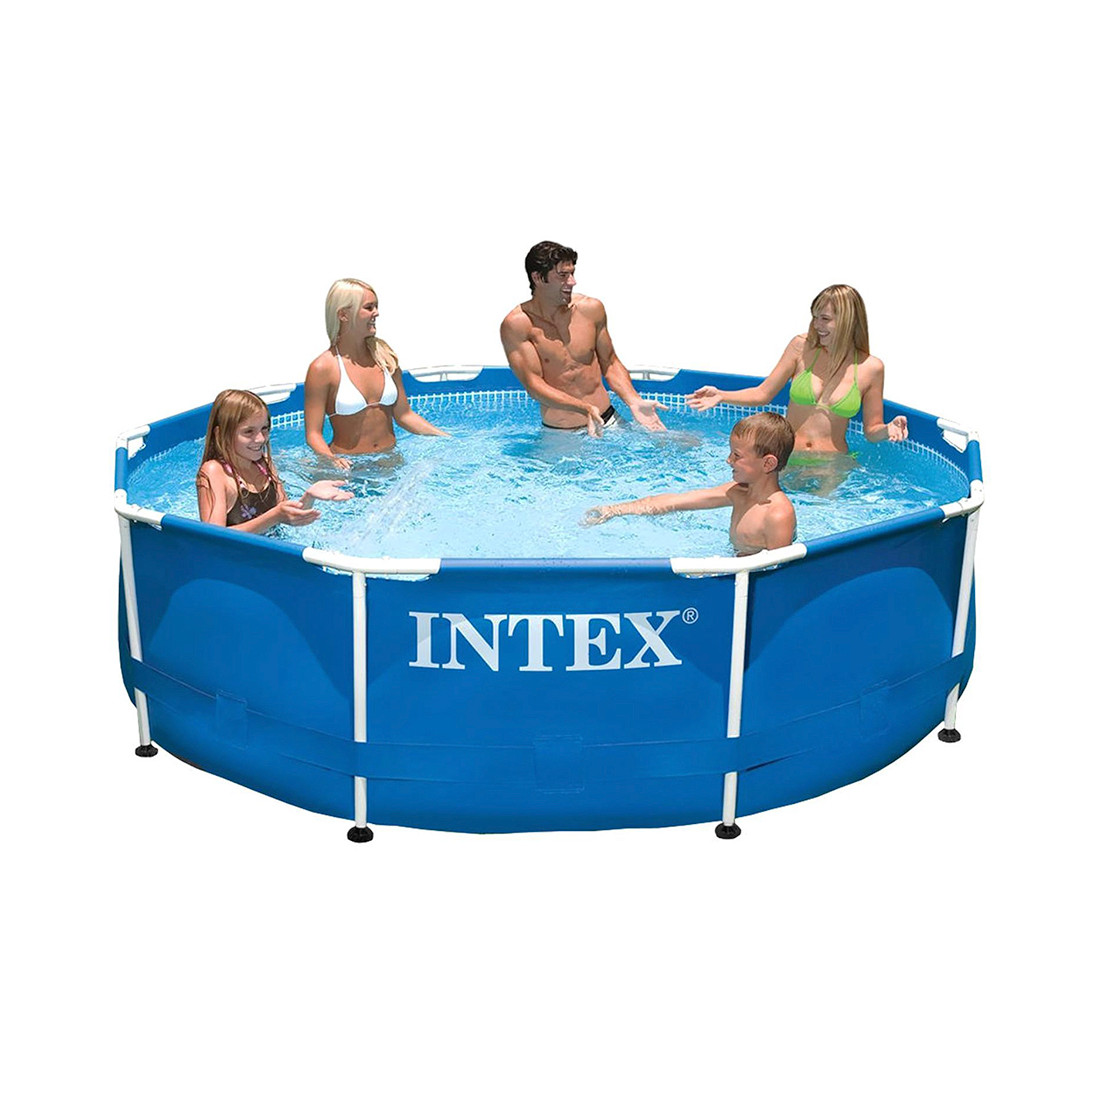 Каркасный бассейн Intex 28210NP